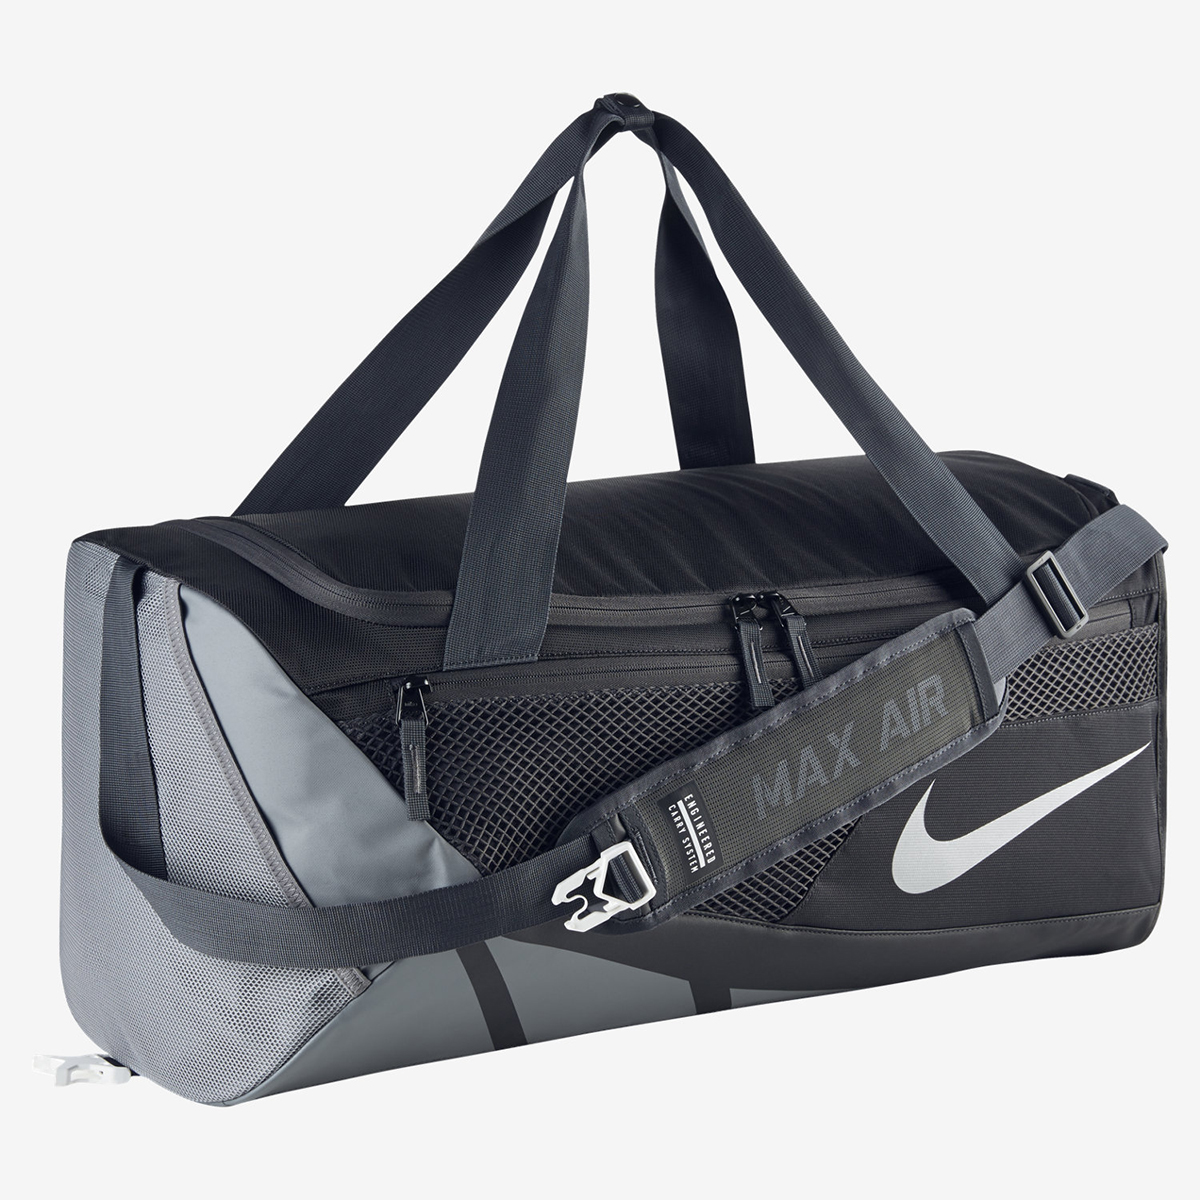 Nike Vapor Max Air 2.0 Duffel Bag - SPORTING GOODS Backpacks ... 388cb69396b58